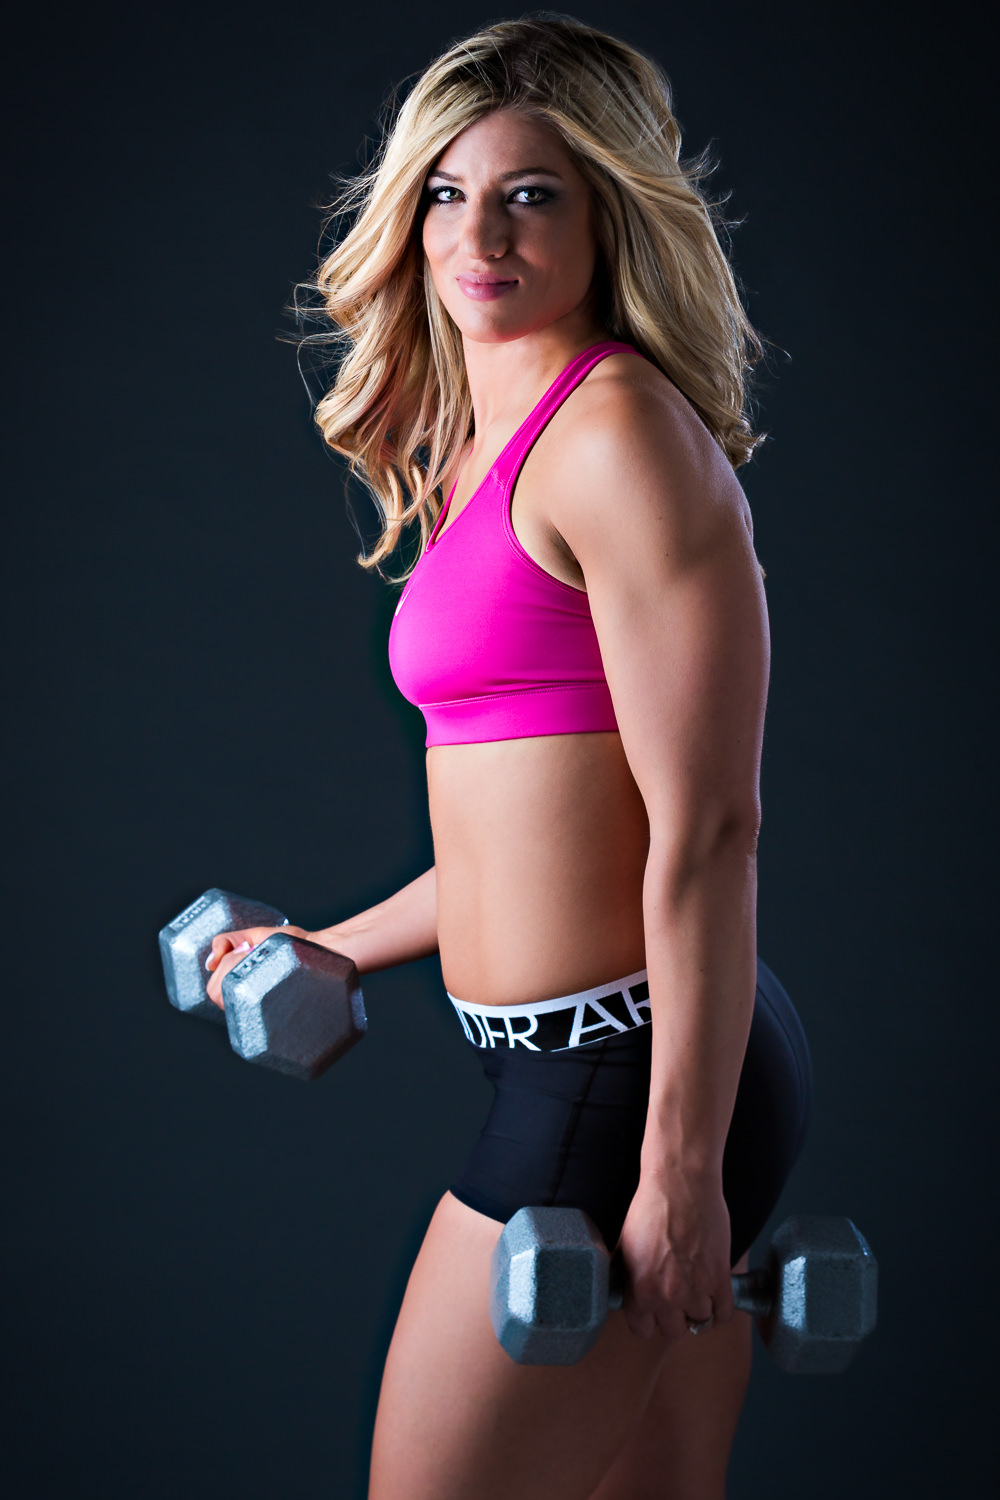 montana-boudoir-photography-female-athlete-lifting.jpg